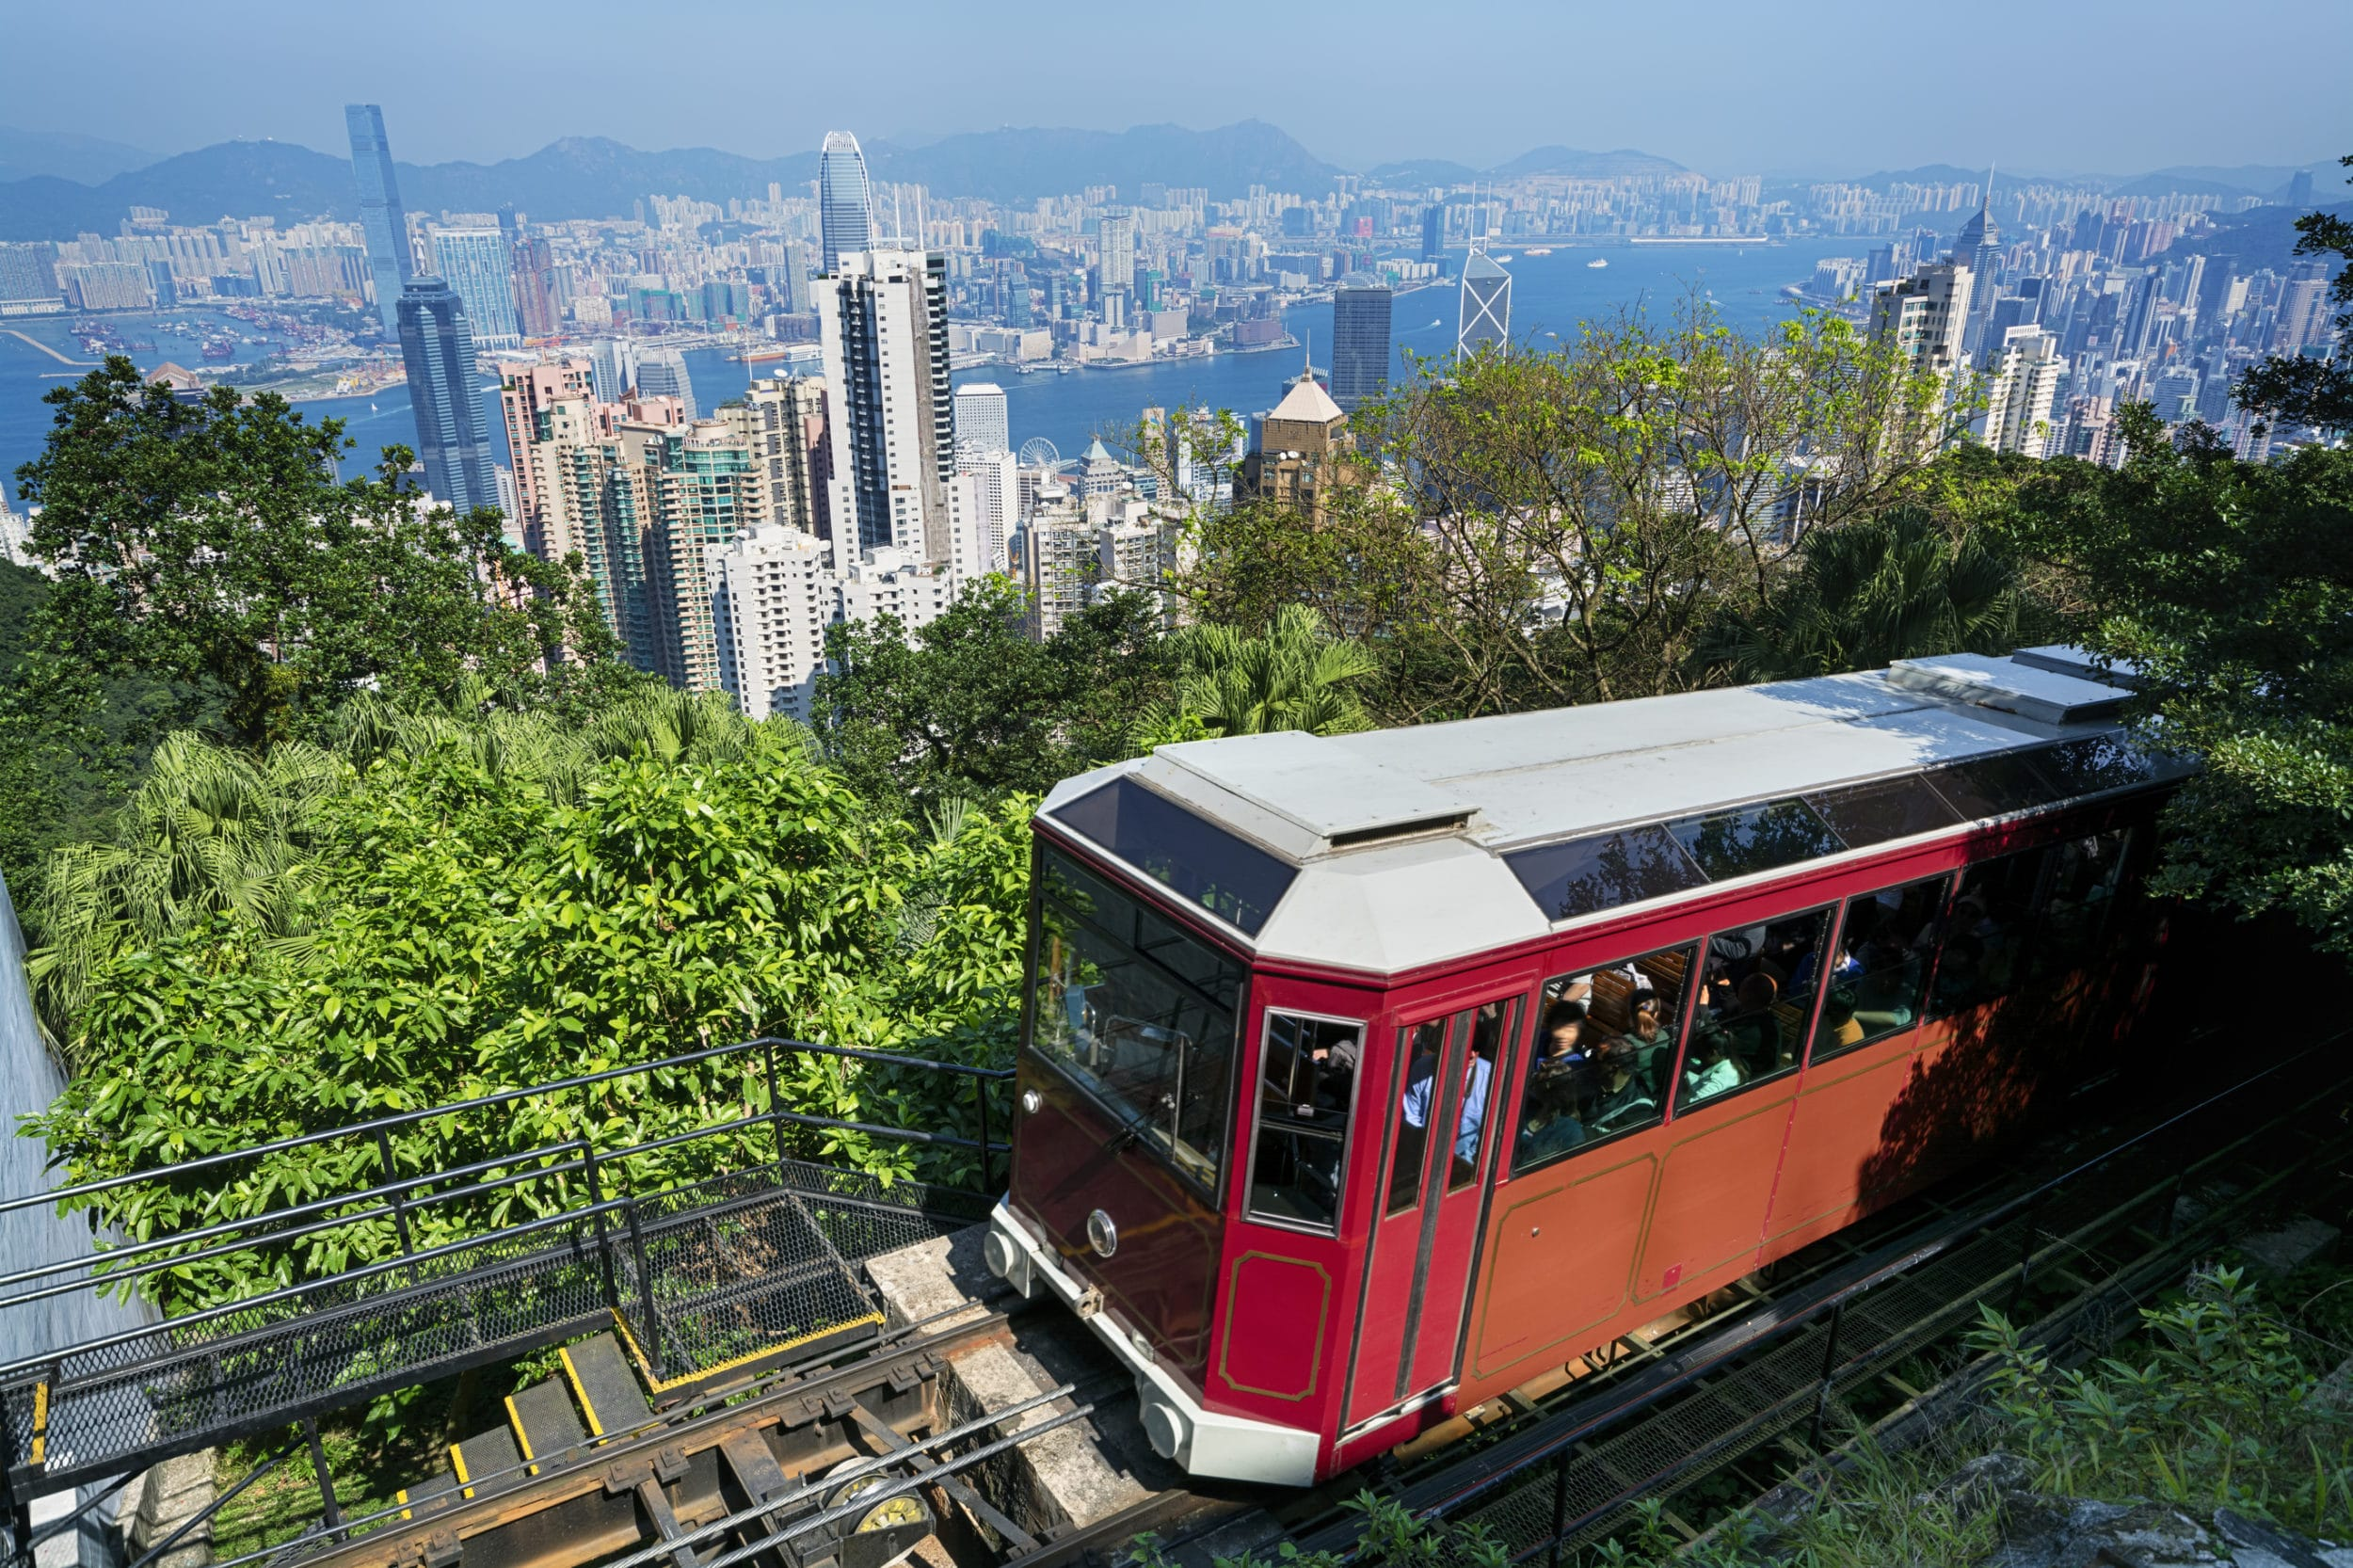 Skip the Peak Tram line with the Hong Kong Pass